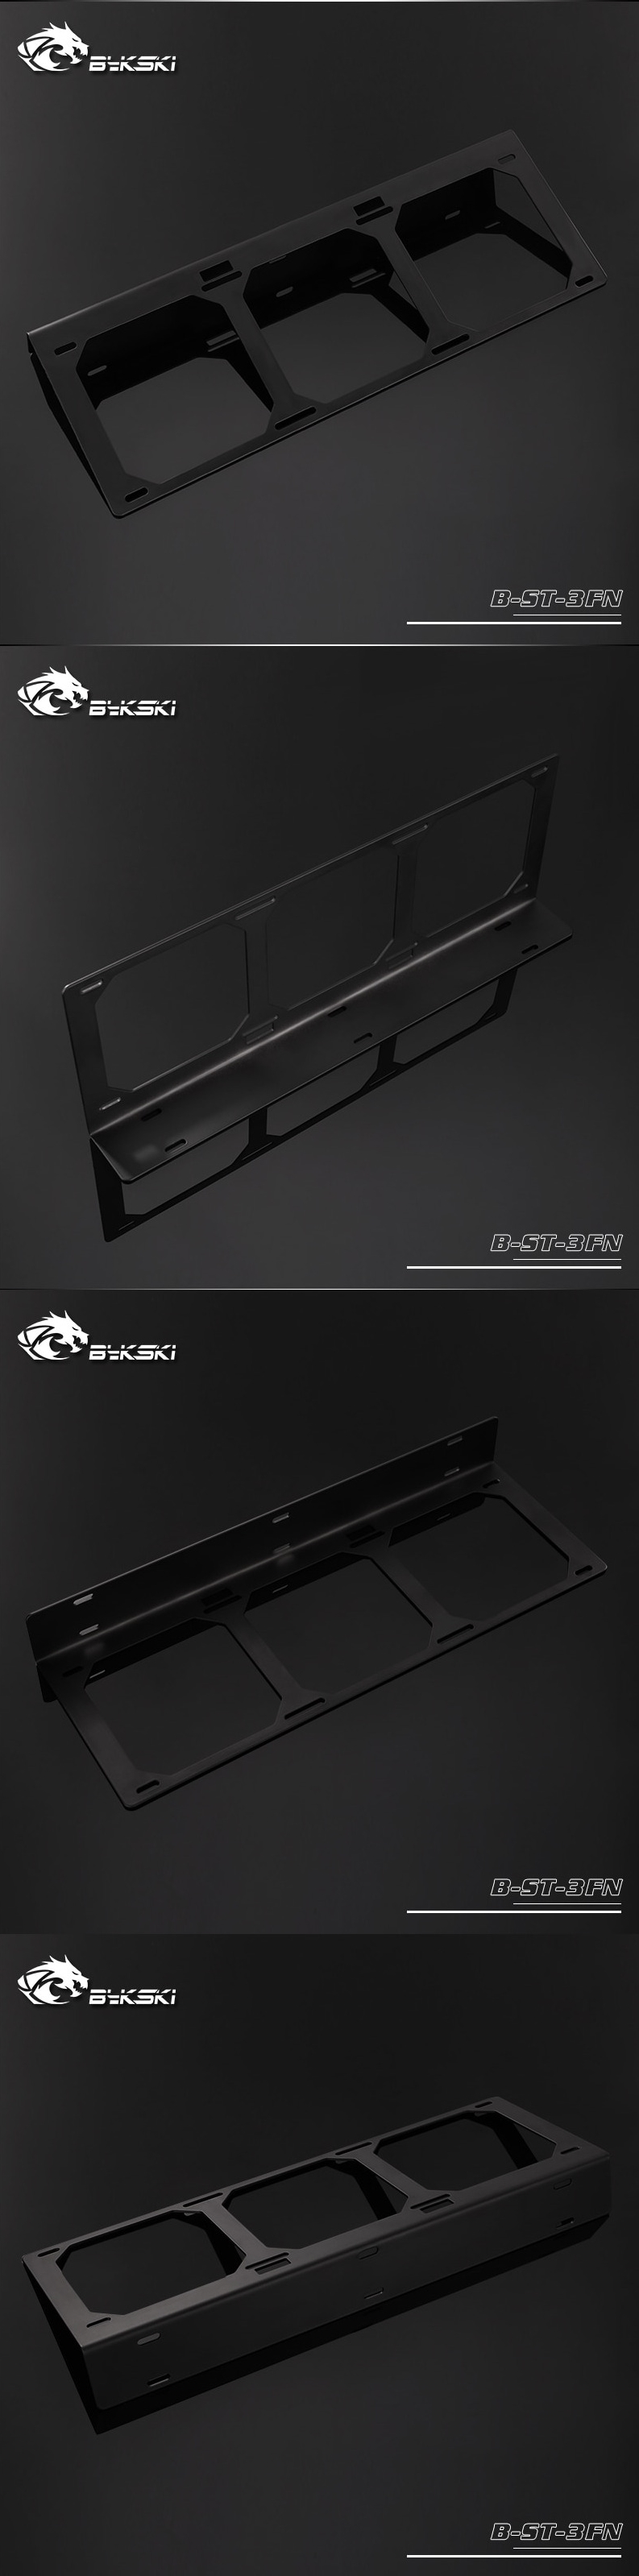 A large marketing image providing additional information about the product Bykski Thermaltake P3 Case Water Board / Radiator Mounting Bracket - Additional alt info not provided